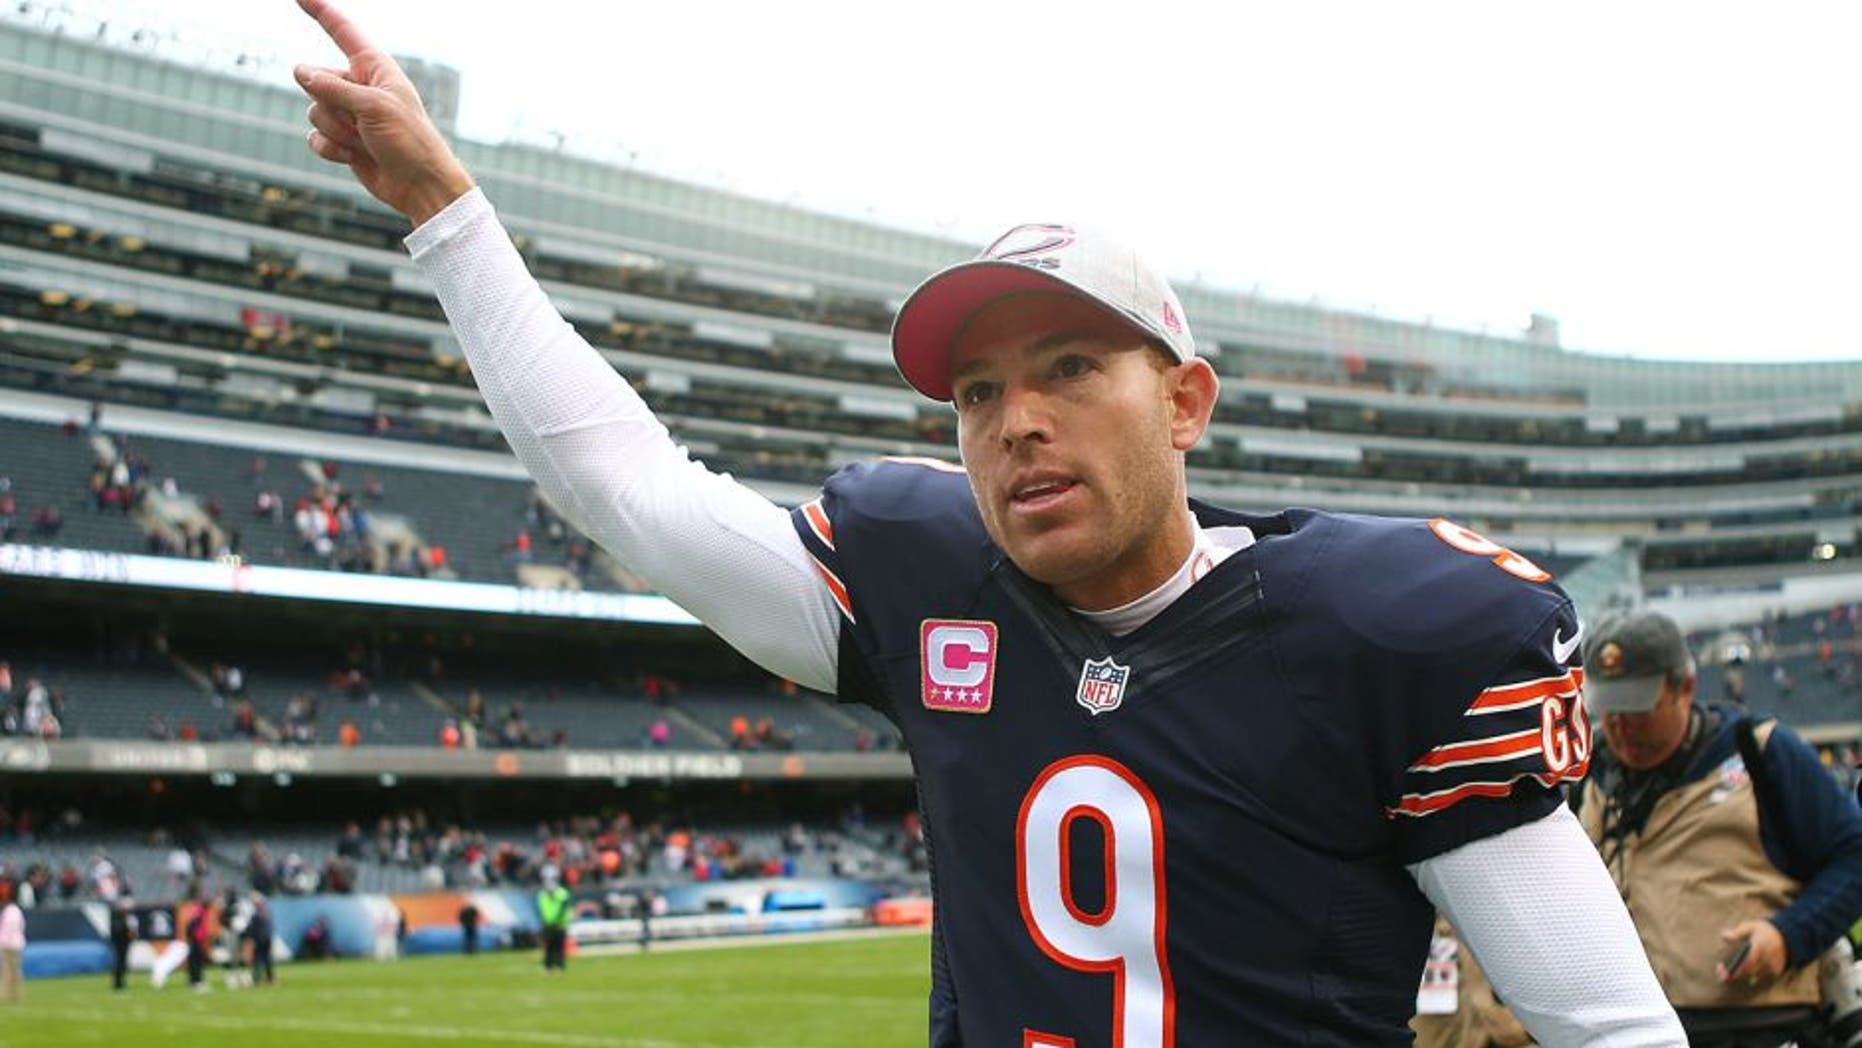 Oct 4, 2015; Chicago, IL, USA; Chicago Bears kicker Robbie Gould (9) runs off the field after the game against the Oakland Raiders at Soldier Field. Mandatory Credit: Jerry Lai-USA TODAY Sports